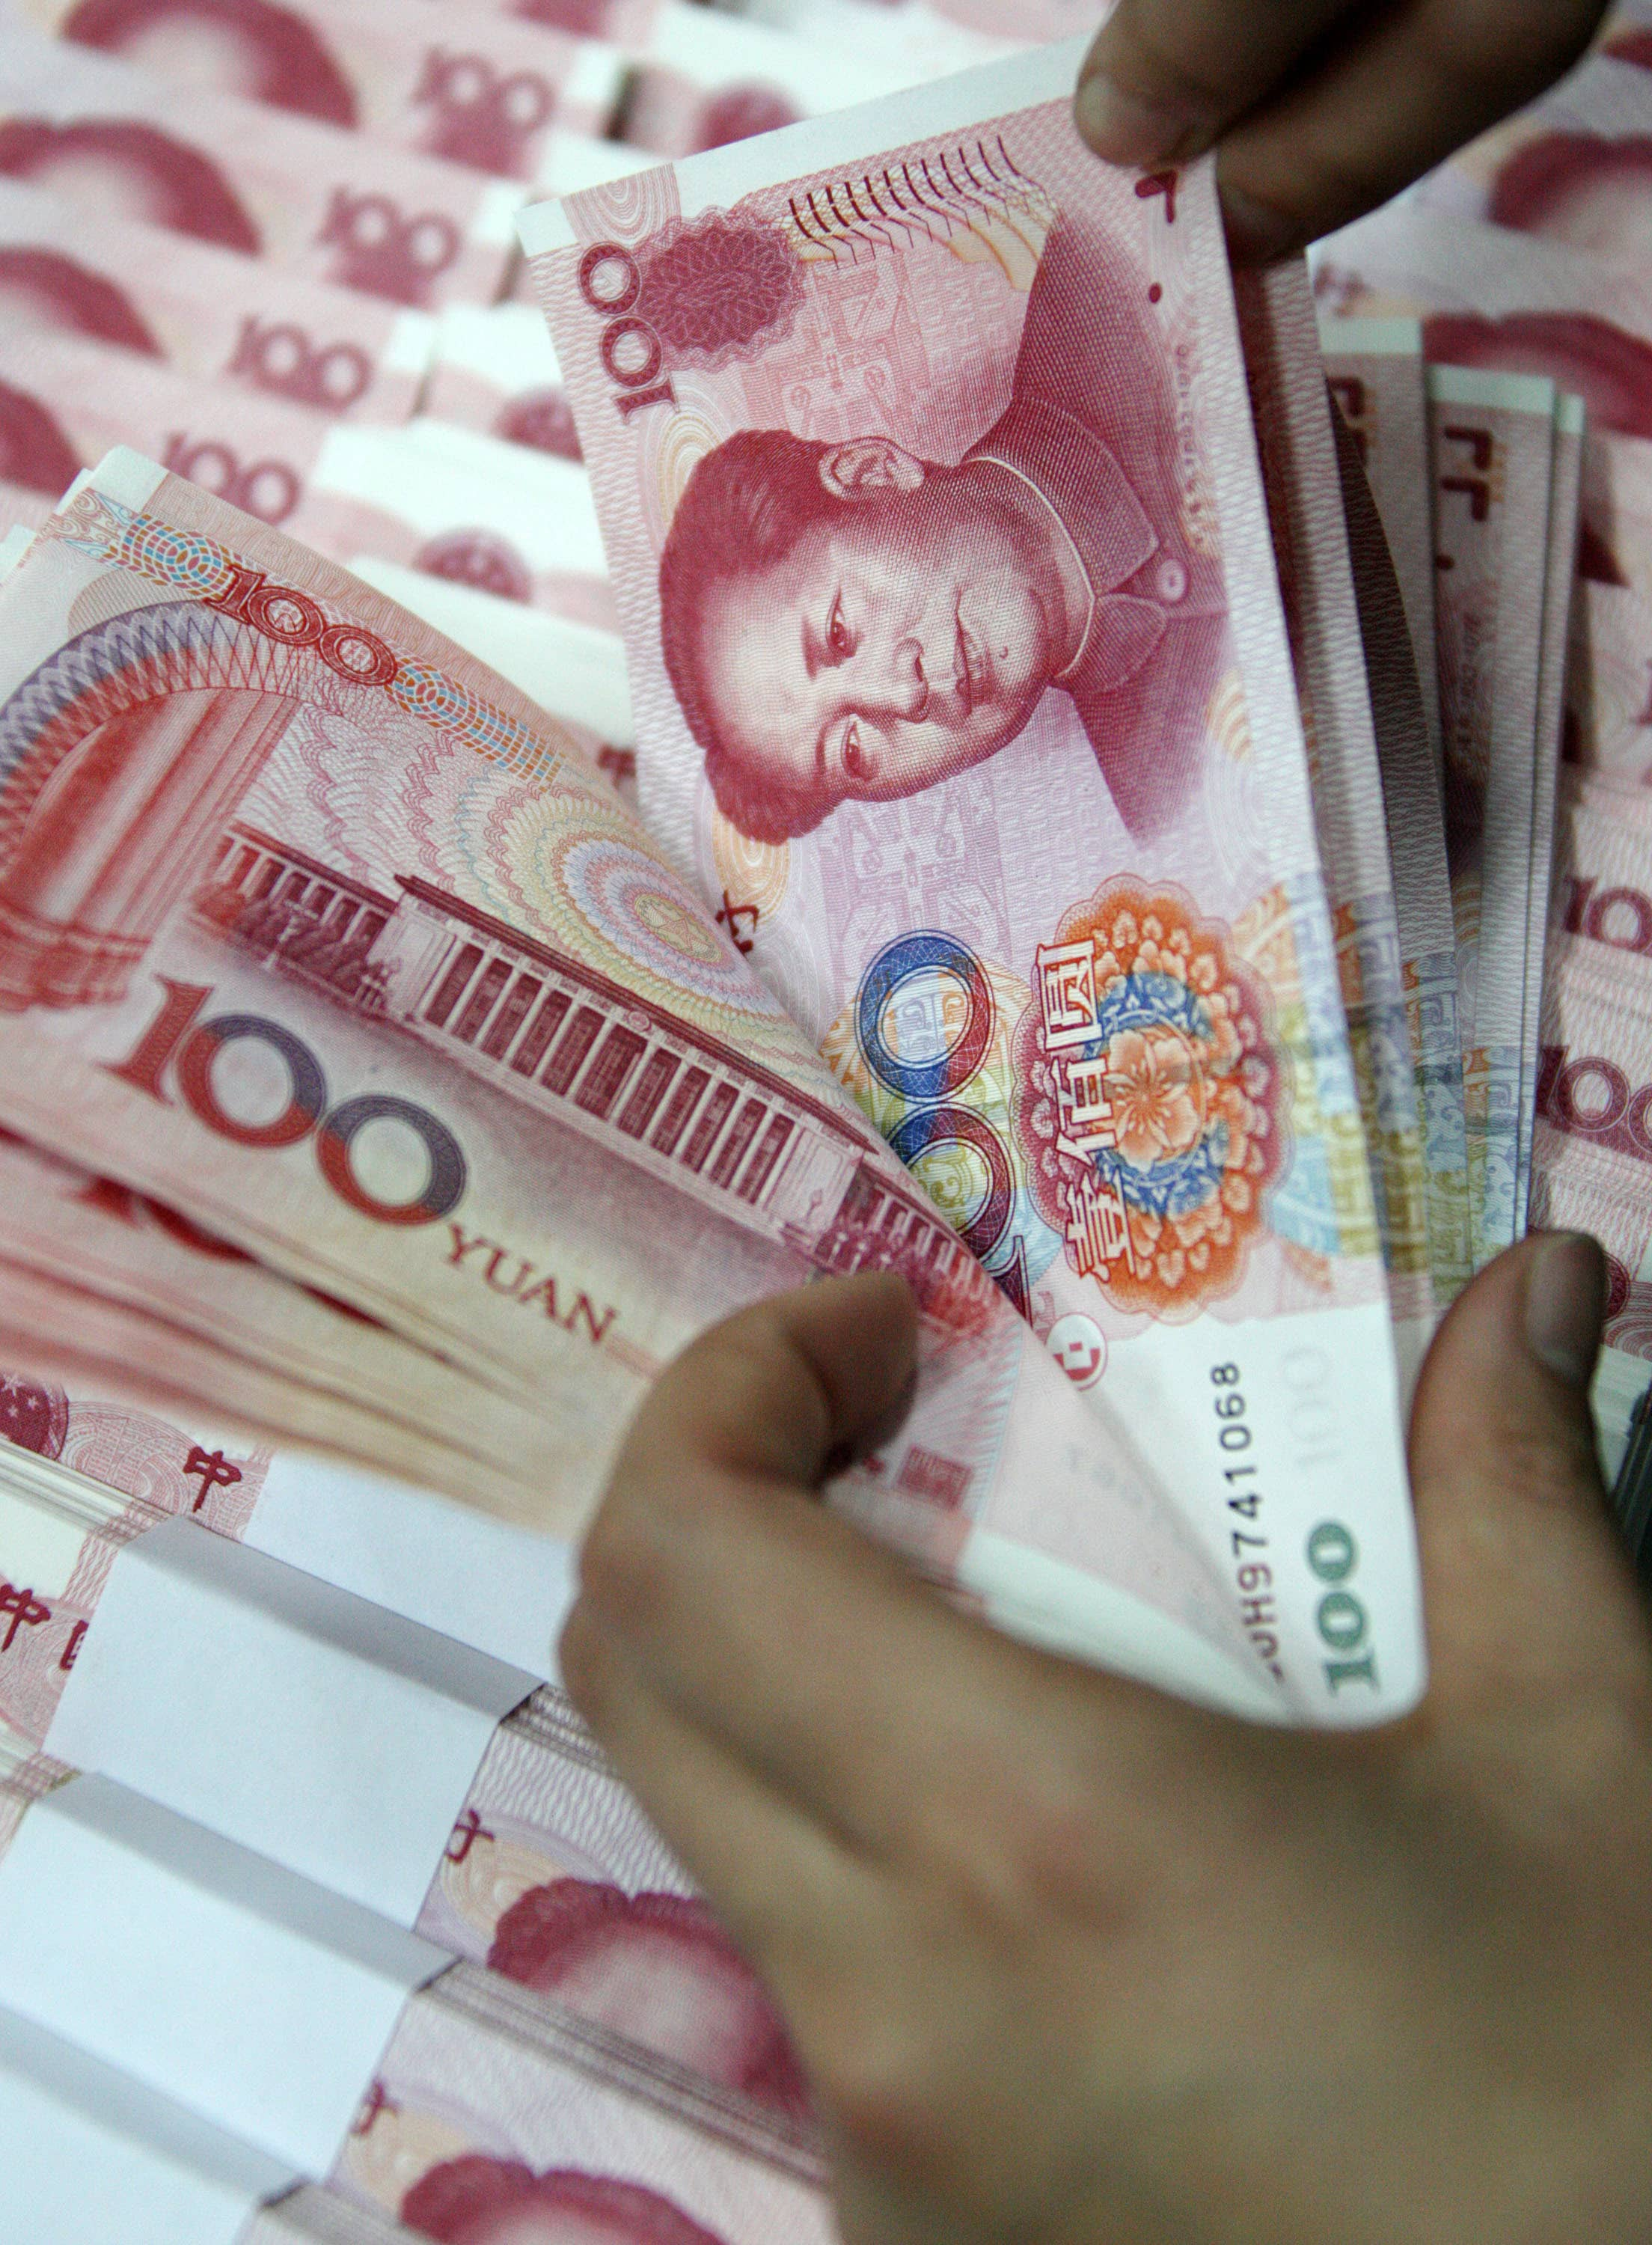 China's central bank denies devaluation is to counter tariffs